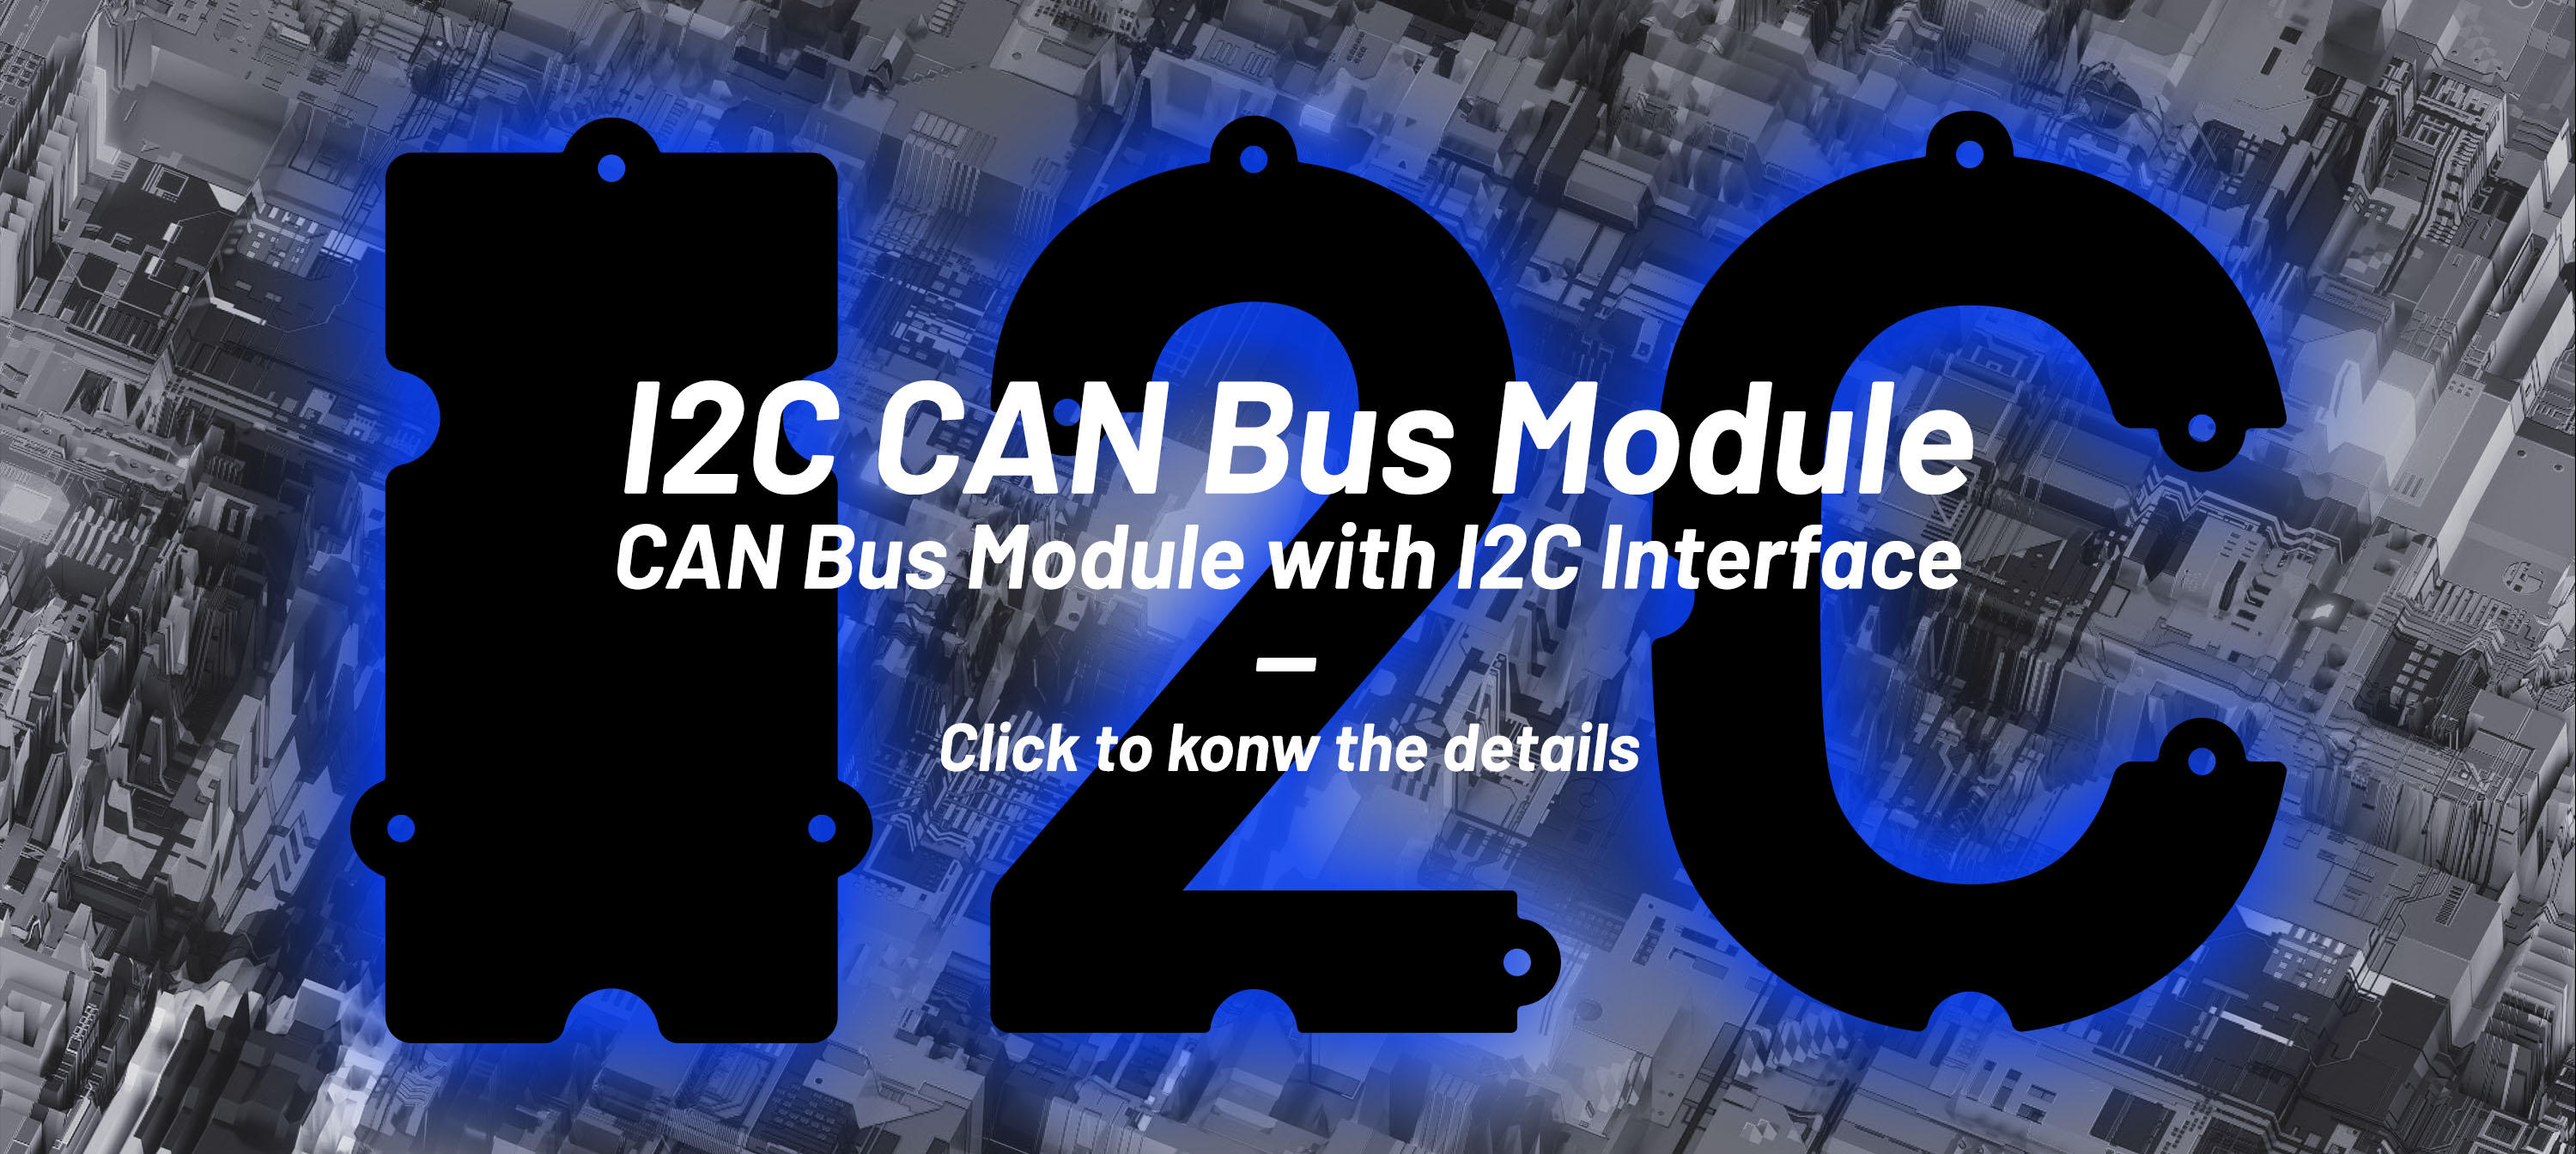 I2C CAN Bus